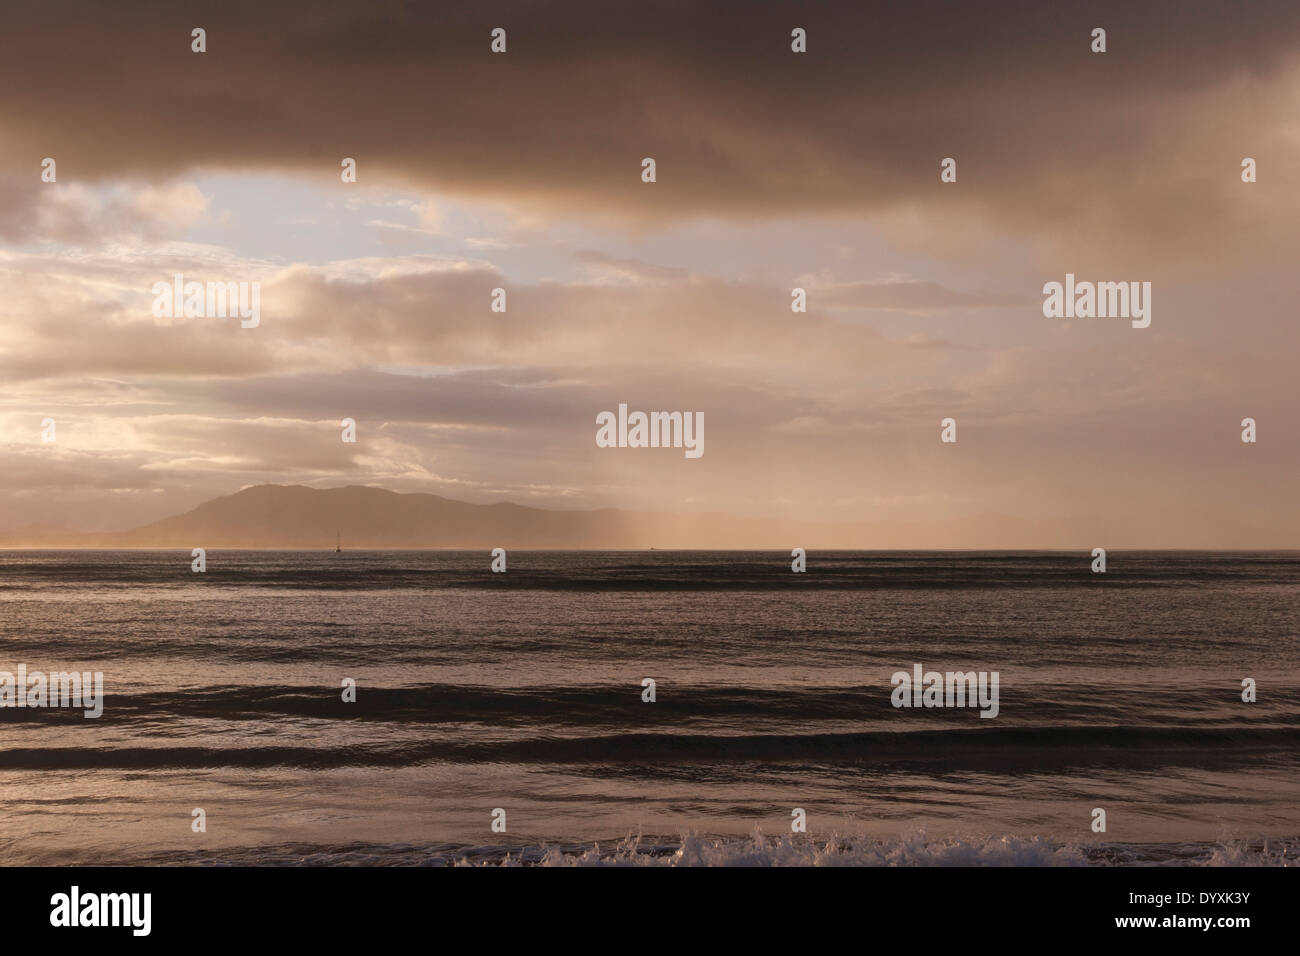 low wide view across ocean with gentle waves at sunset with back lit rain falling on ocean and distant mountains. - Stock Image